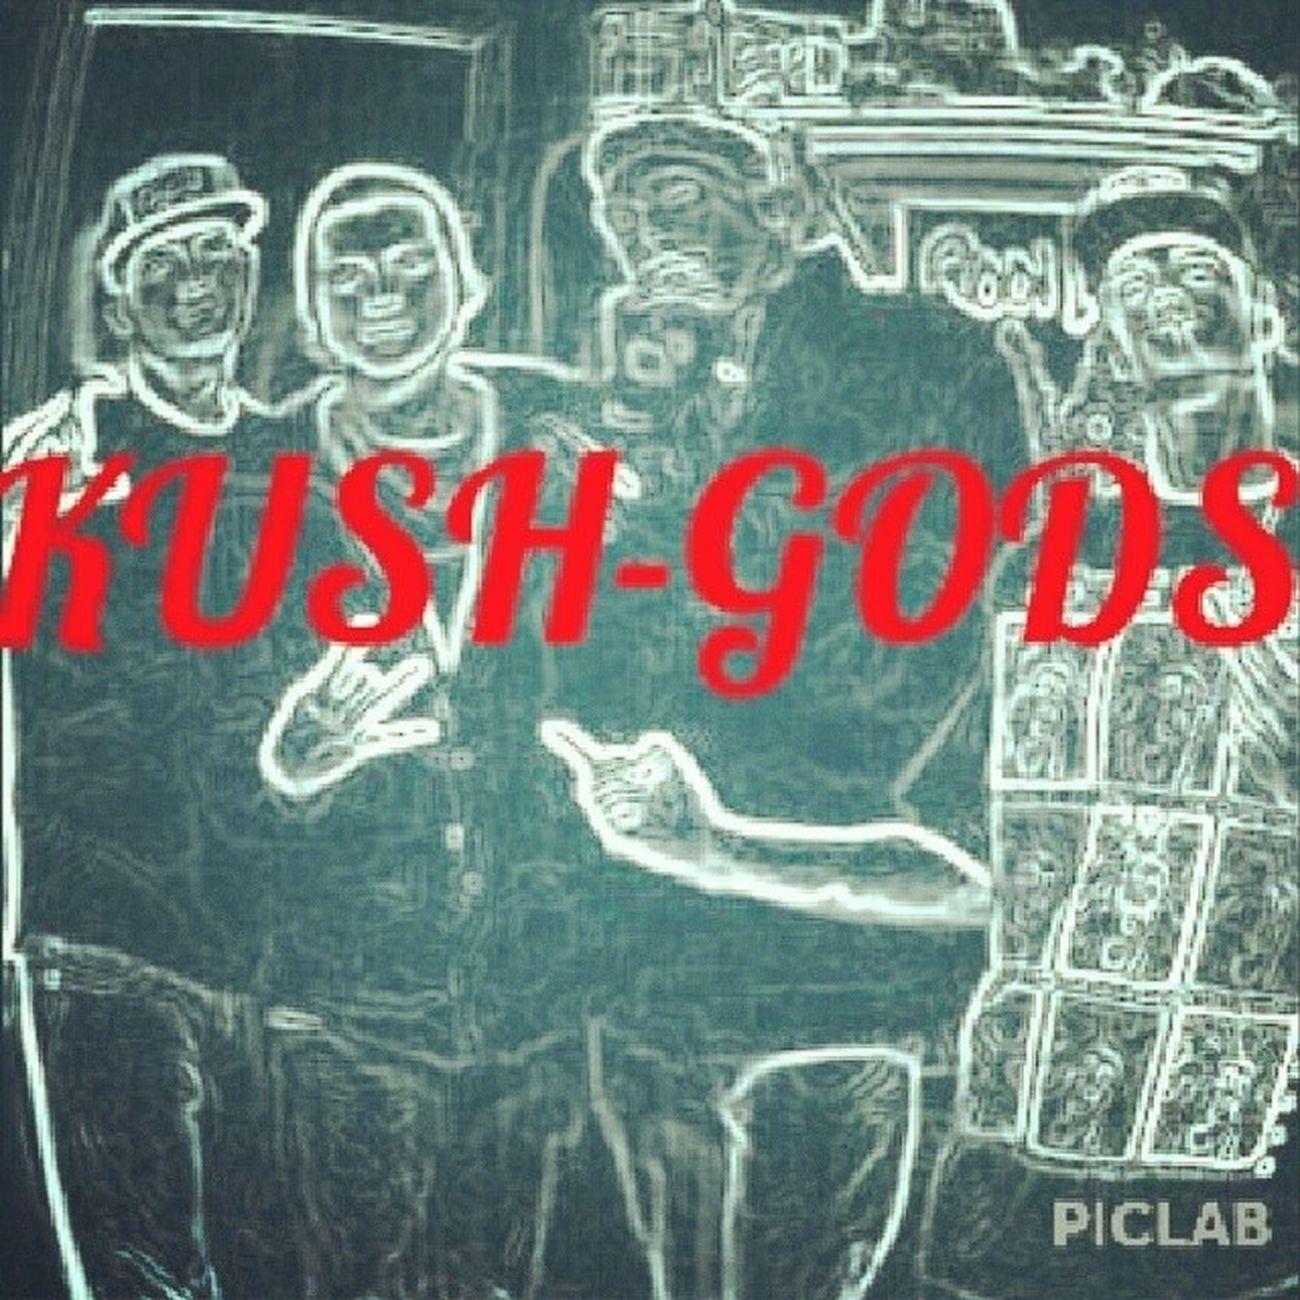 Kushgods Kushlife Highlife Yolomynigga baked cloudninesheros cloud9residents trippy trapaholics stoned moneyflow mynigga rastalife